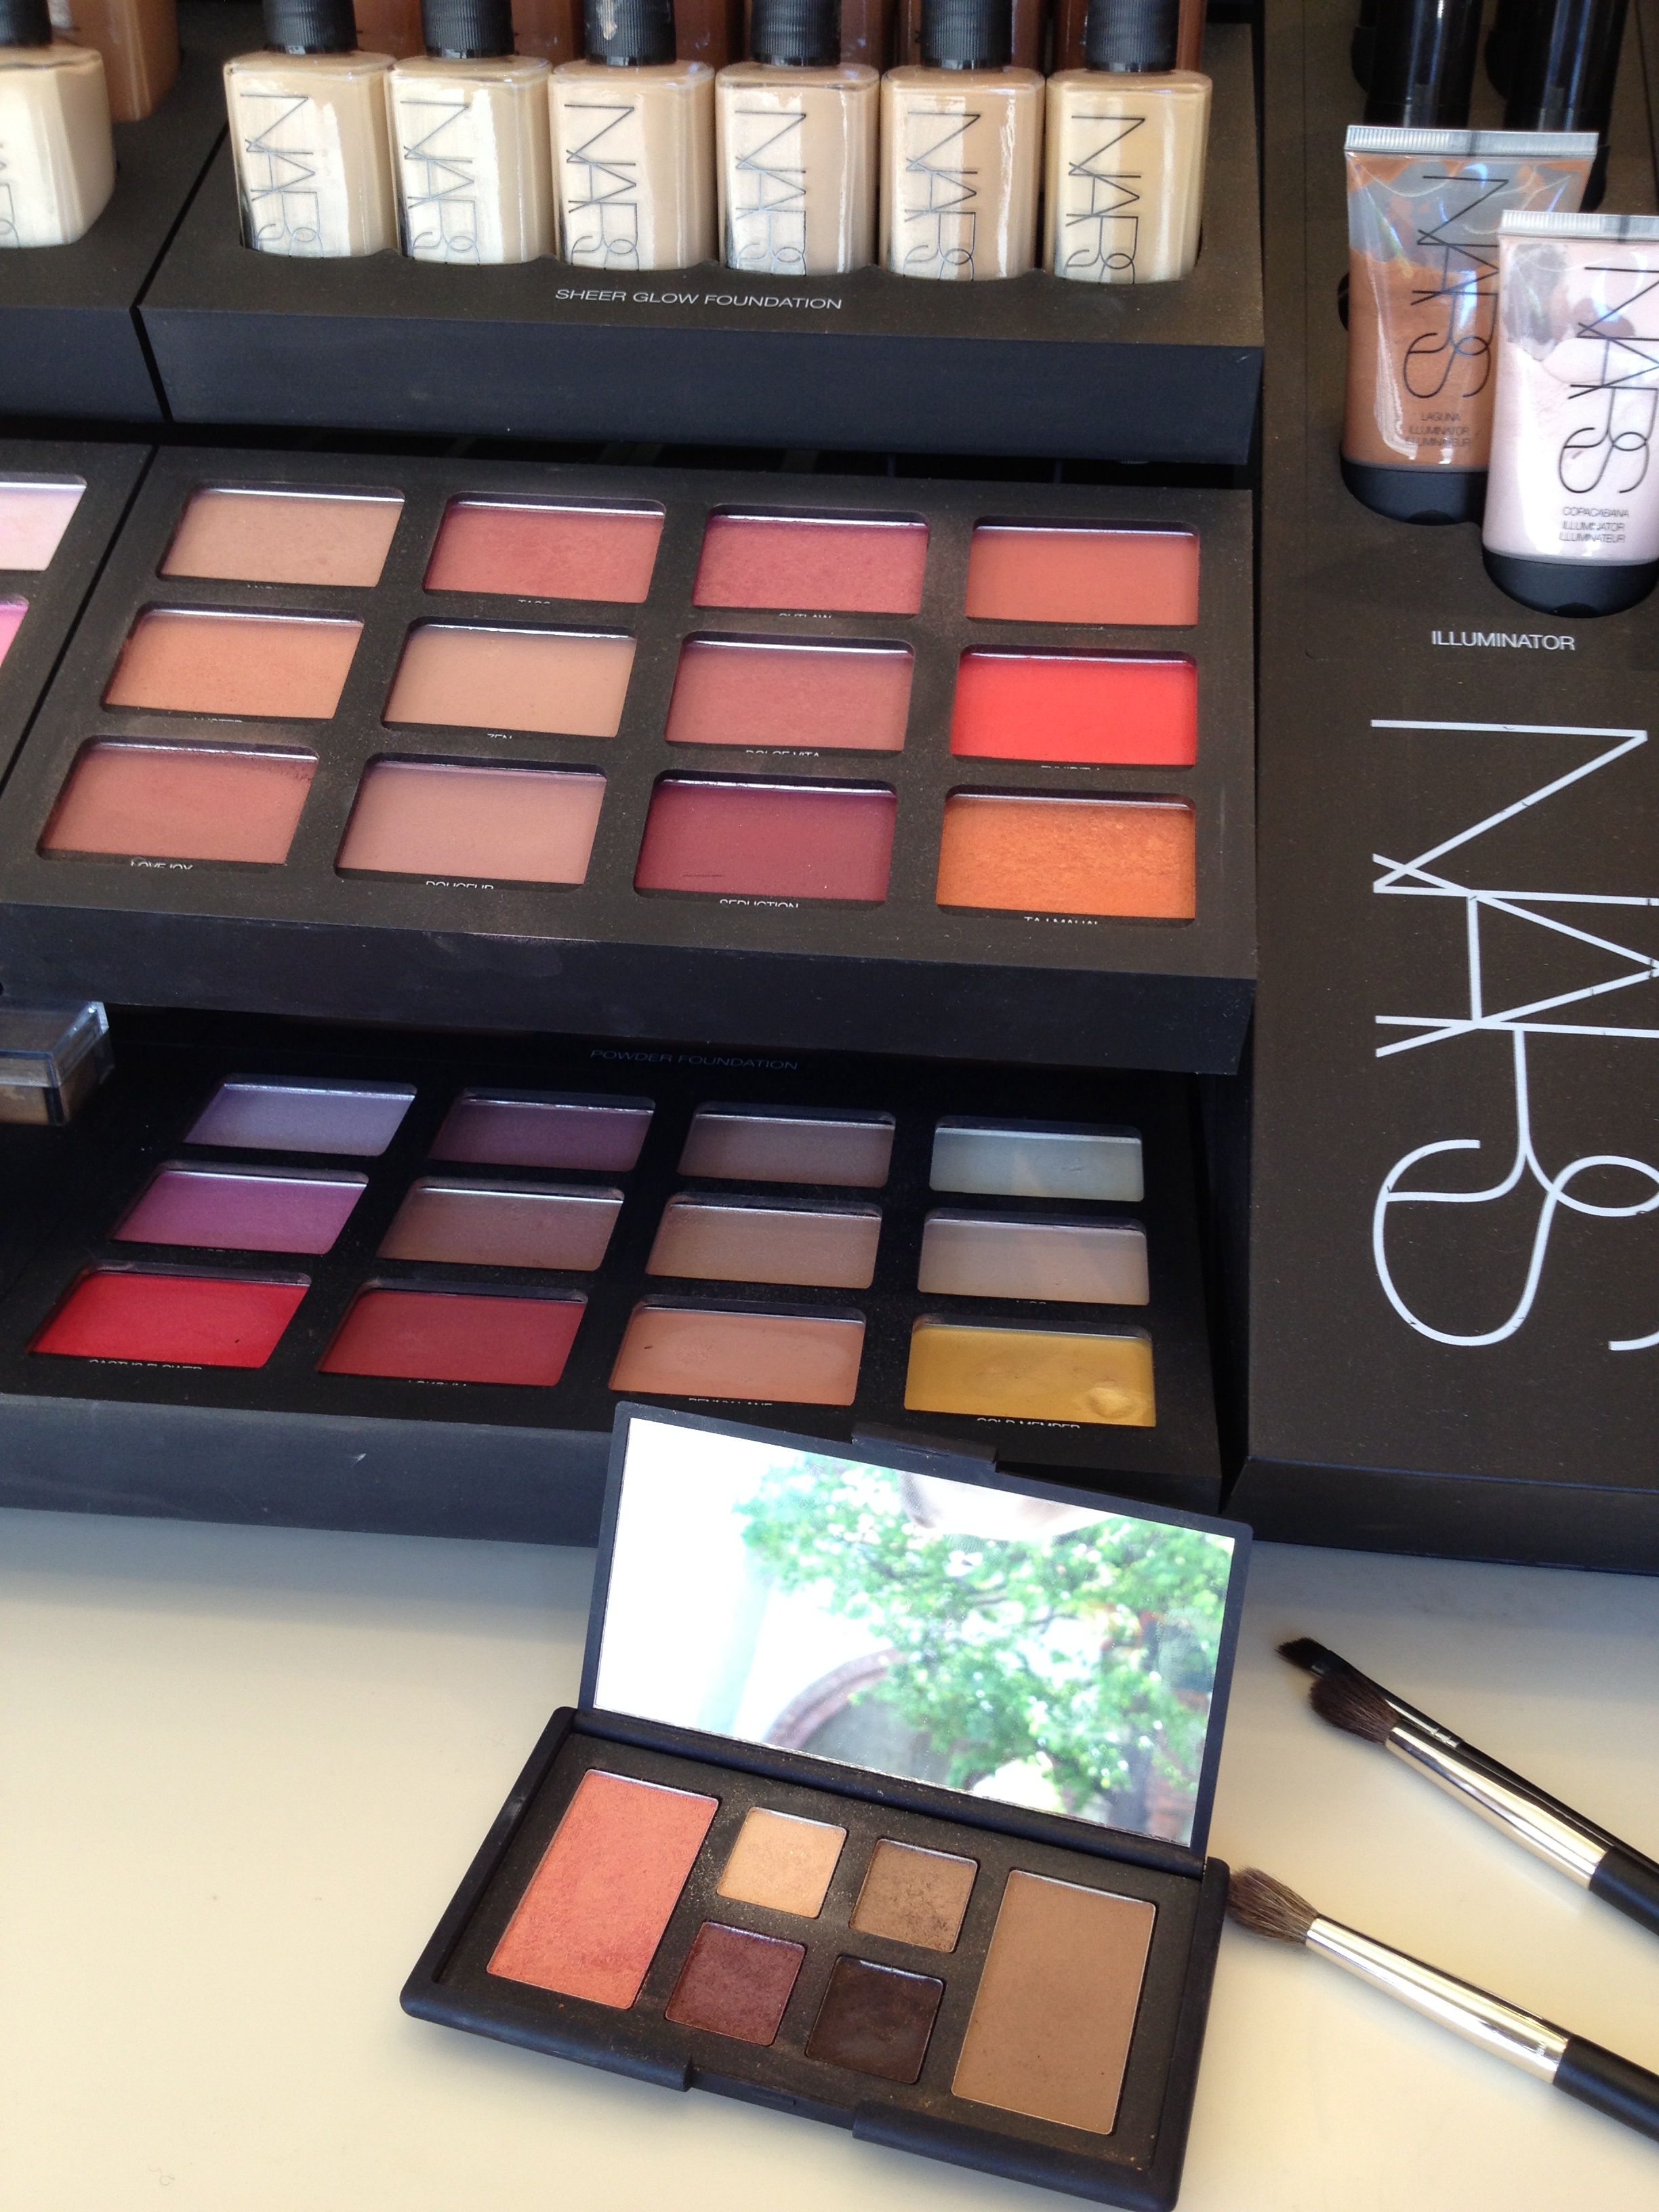 At Space.N.K. apothecary in Brentwood, CA. Pictured at the bottom: Nars, The Happening Eye & Cheek Palette, $65